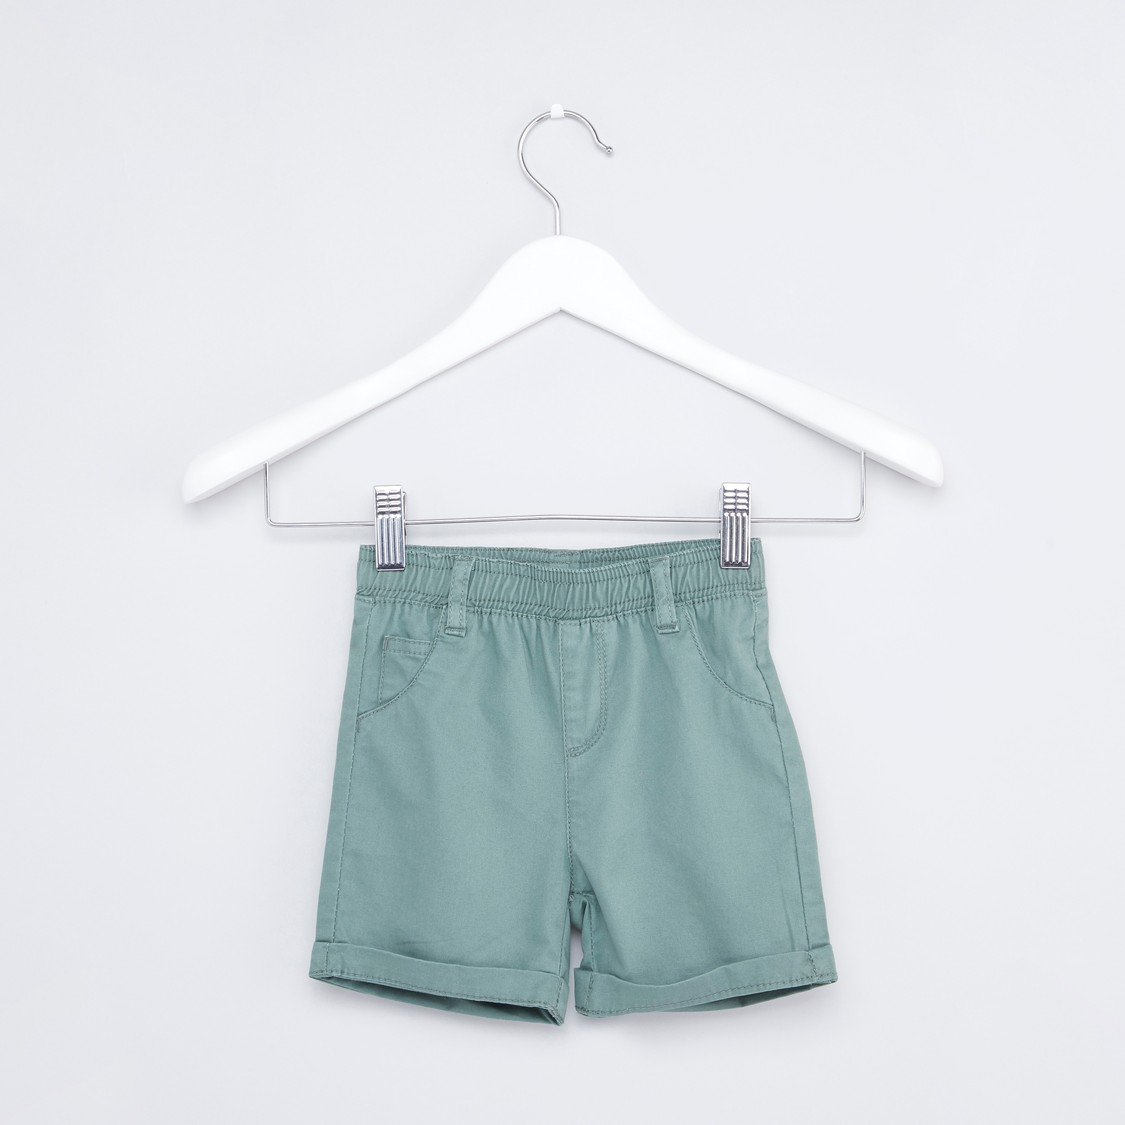 Shorts with Pocket Detailing and Elasticated Closure